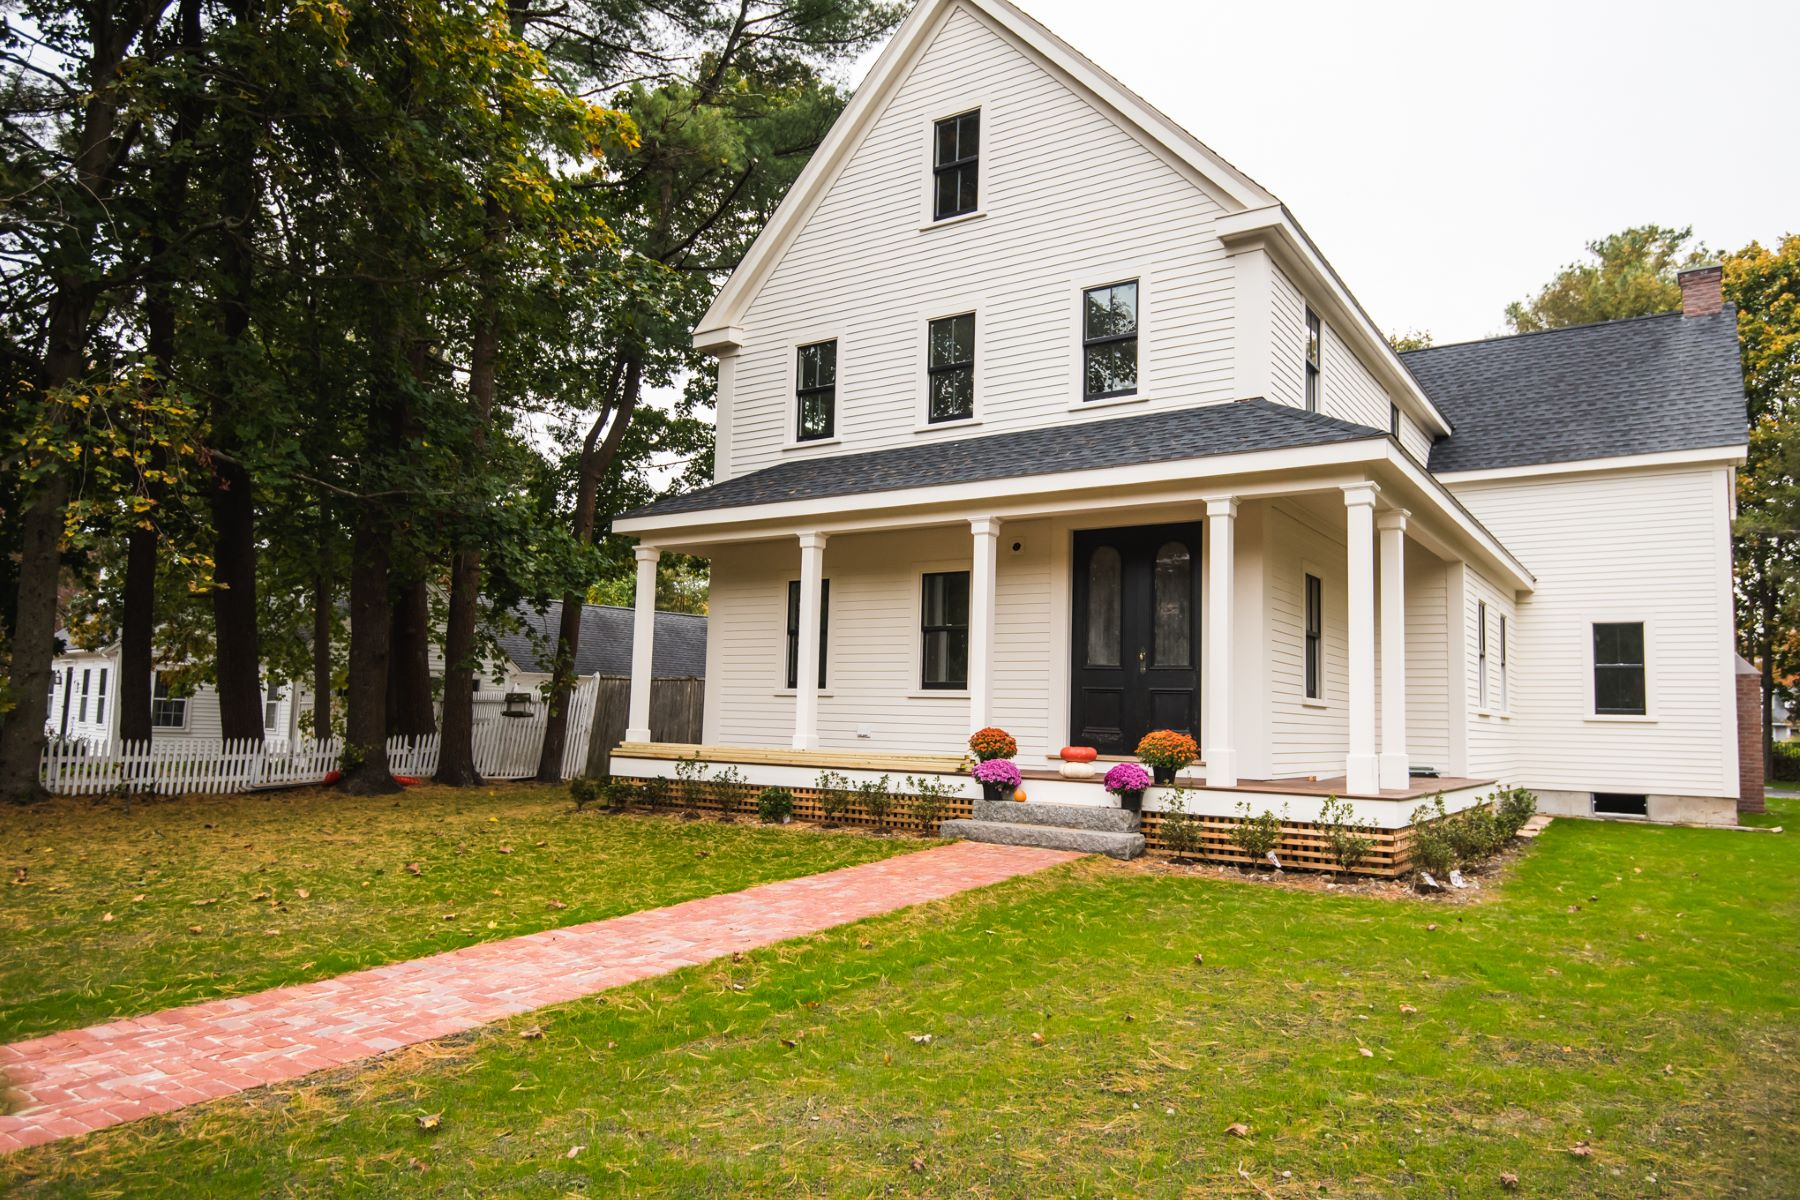 Single Family Homes for Sale at 1007 Main Street Hingham, Massachusetts 02043 United States